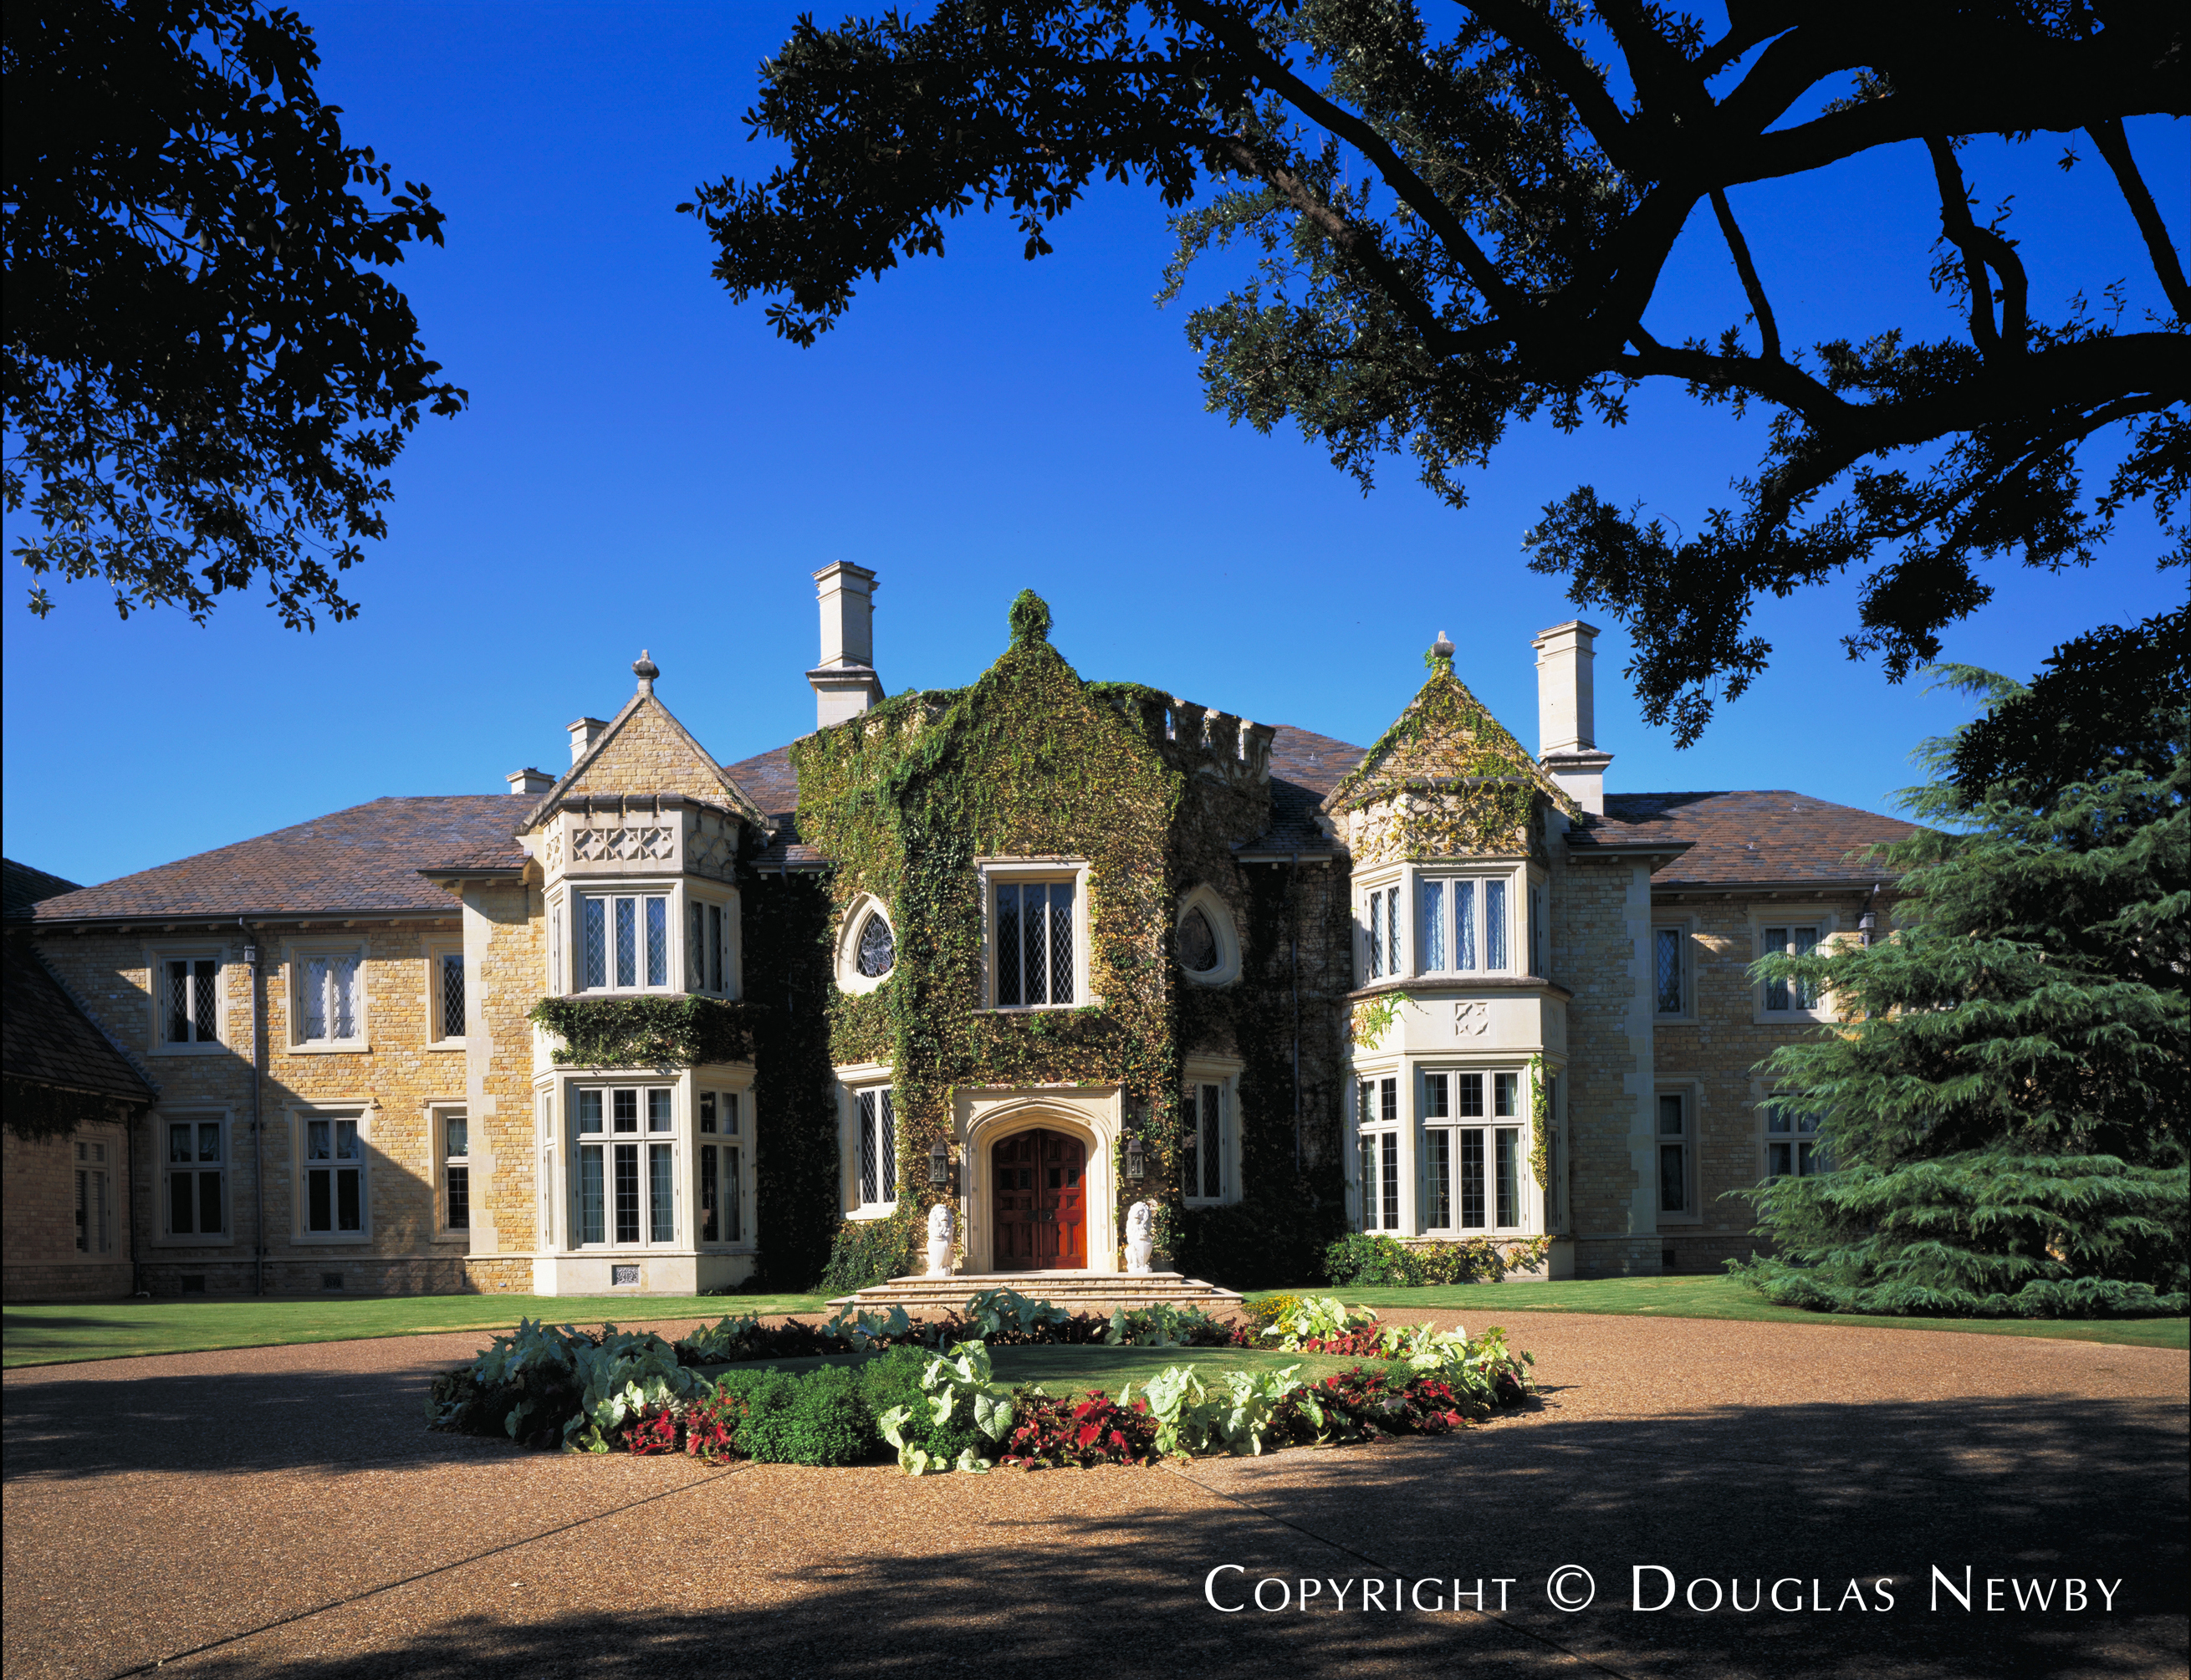 dallas neighborhoods including the most prominent architecturally